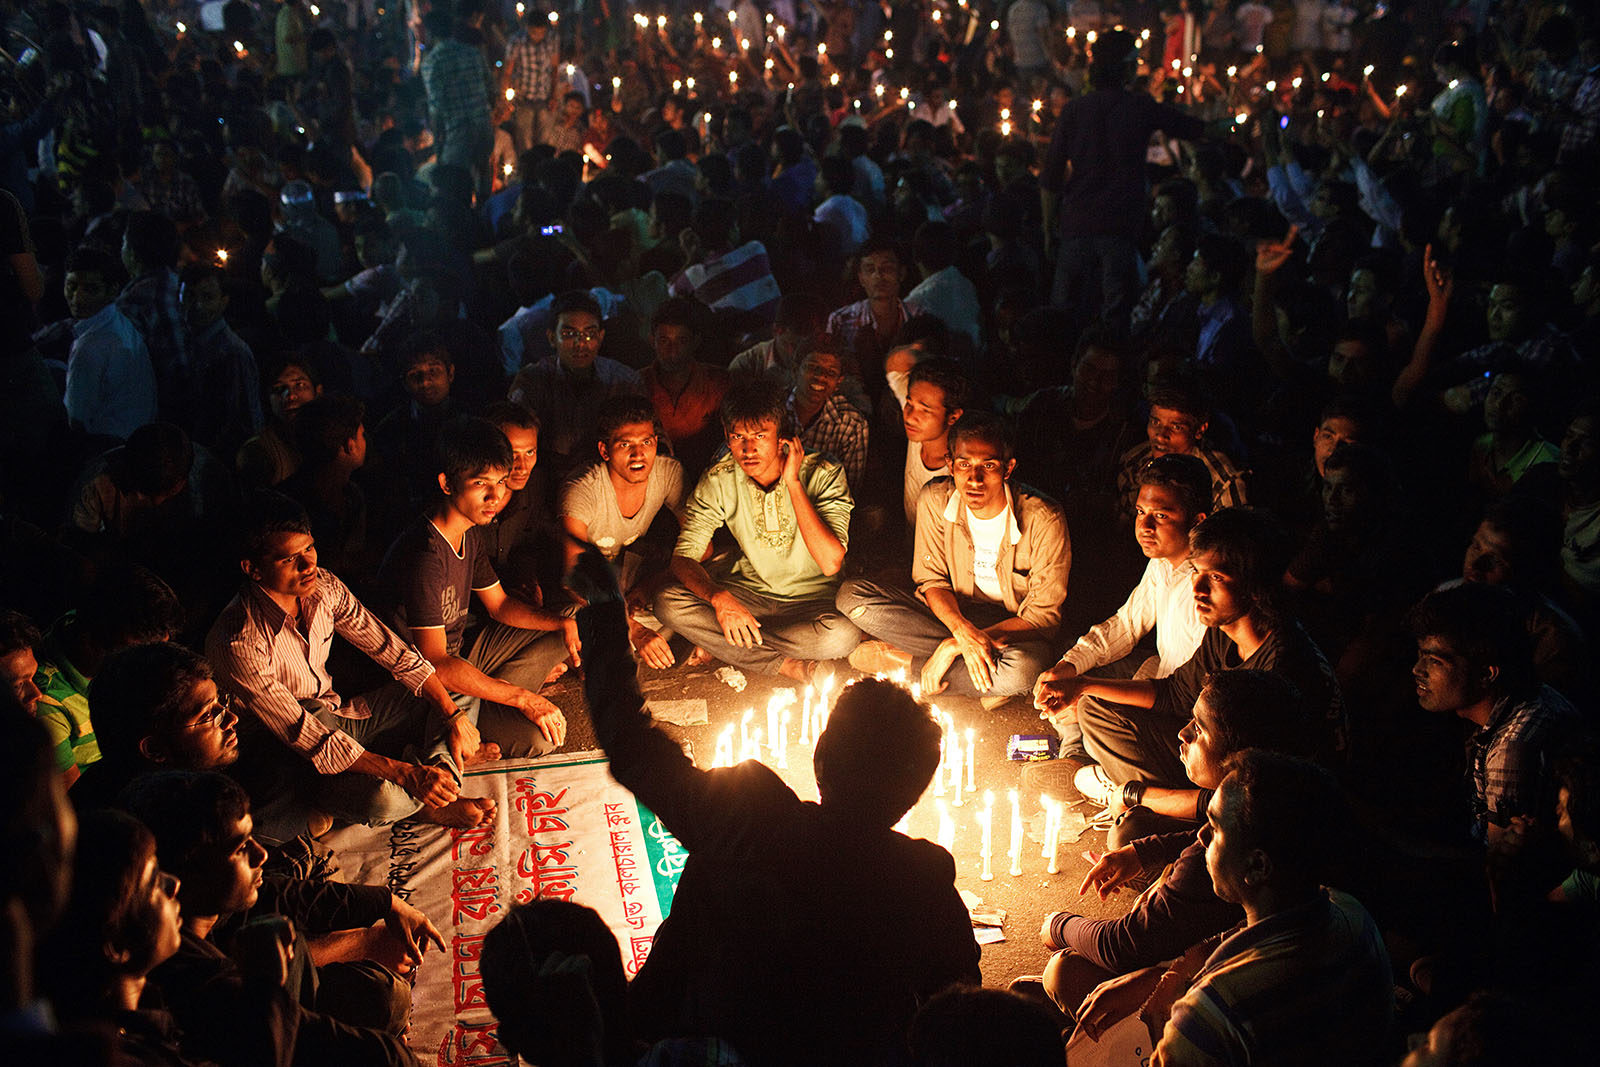 bangladesh_dhaka_shahbagh_Shahbag_deomonstration_protest_rally_night_young_people_2013-1600x1067.jpg